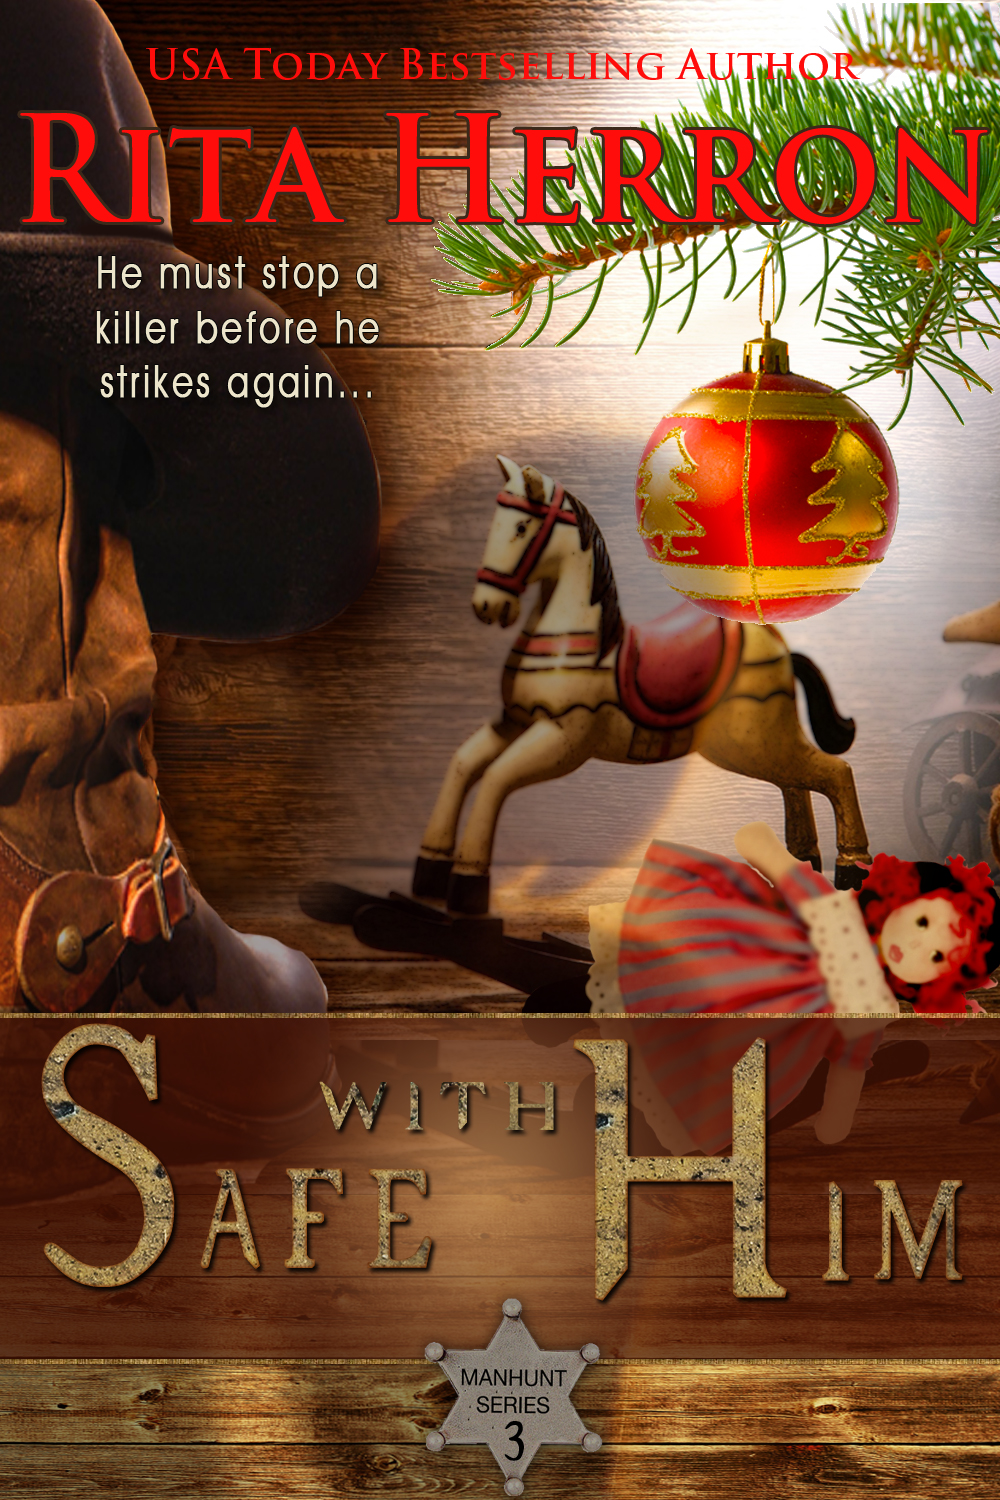 Safe With Him